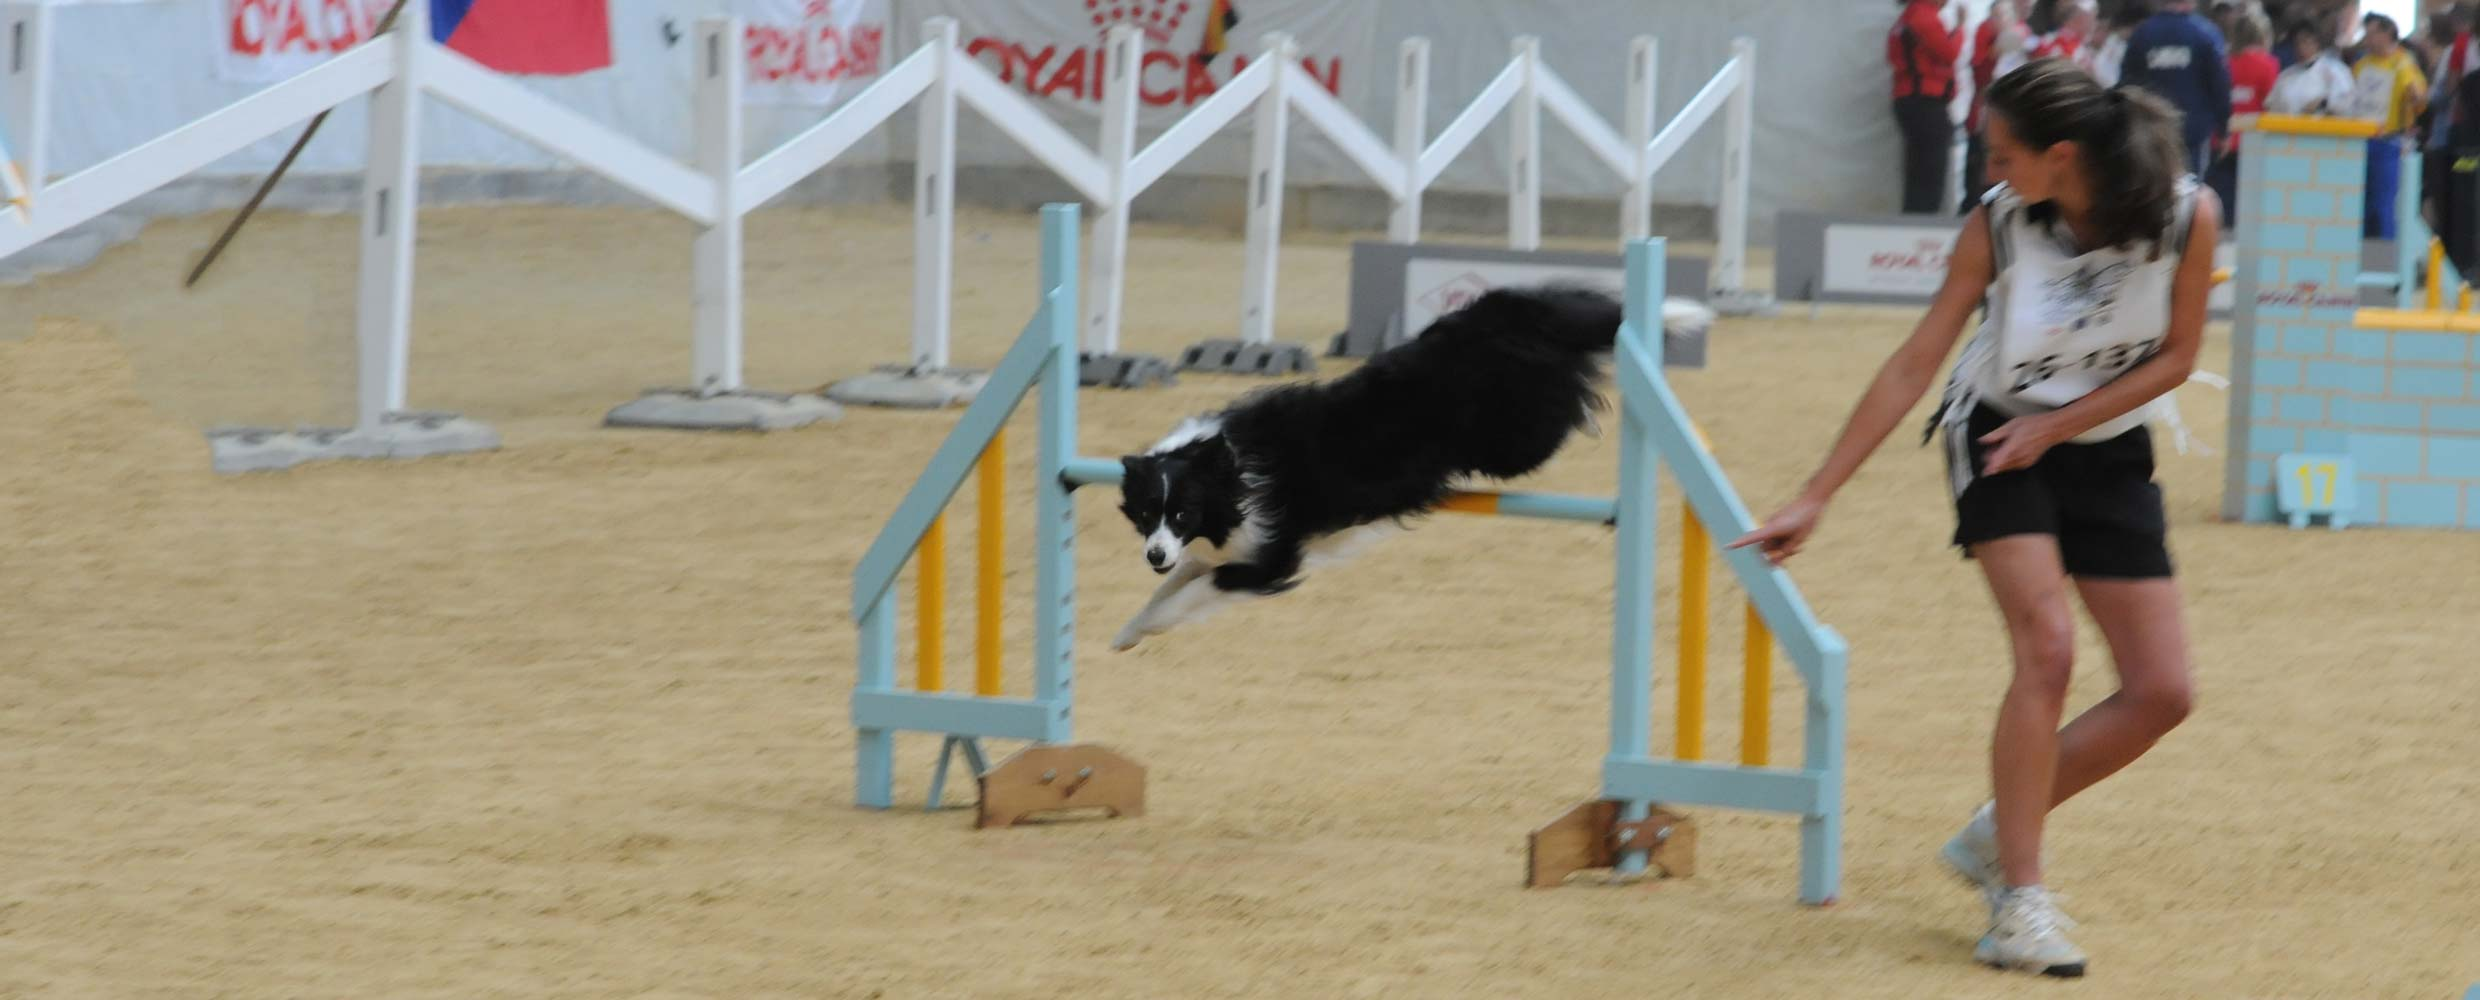 Alison Roets with Freya the Border Collie taking a hurdle